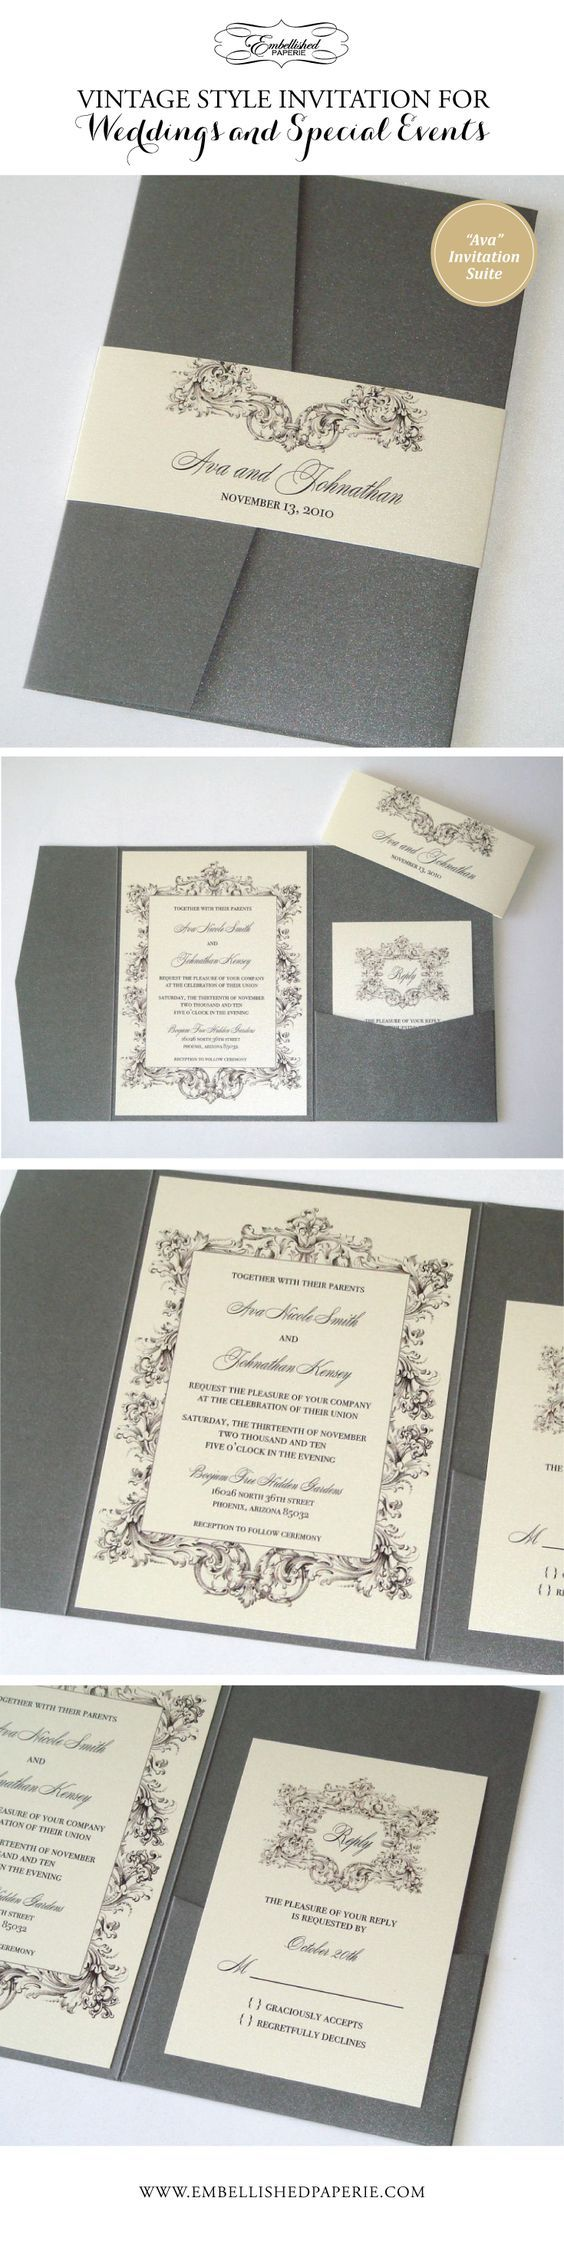 types of printing for wedding invitations%0A Vintage Wedding Invitation in Pewter Grey and Ivory  Pewter Grey Metallic  Pocket folder with Belly Band  Invitation and RSVP Cards printed on Ivory  metallic